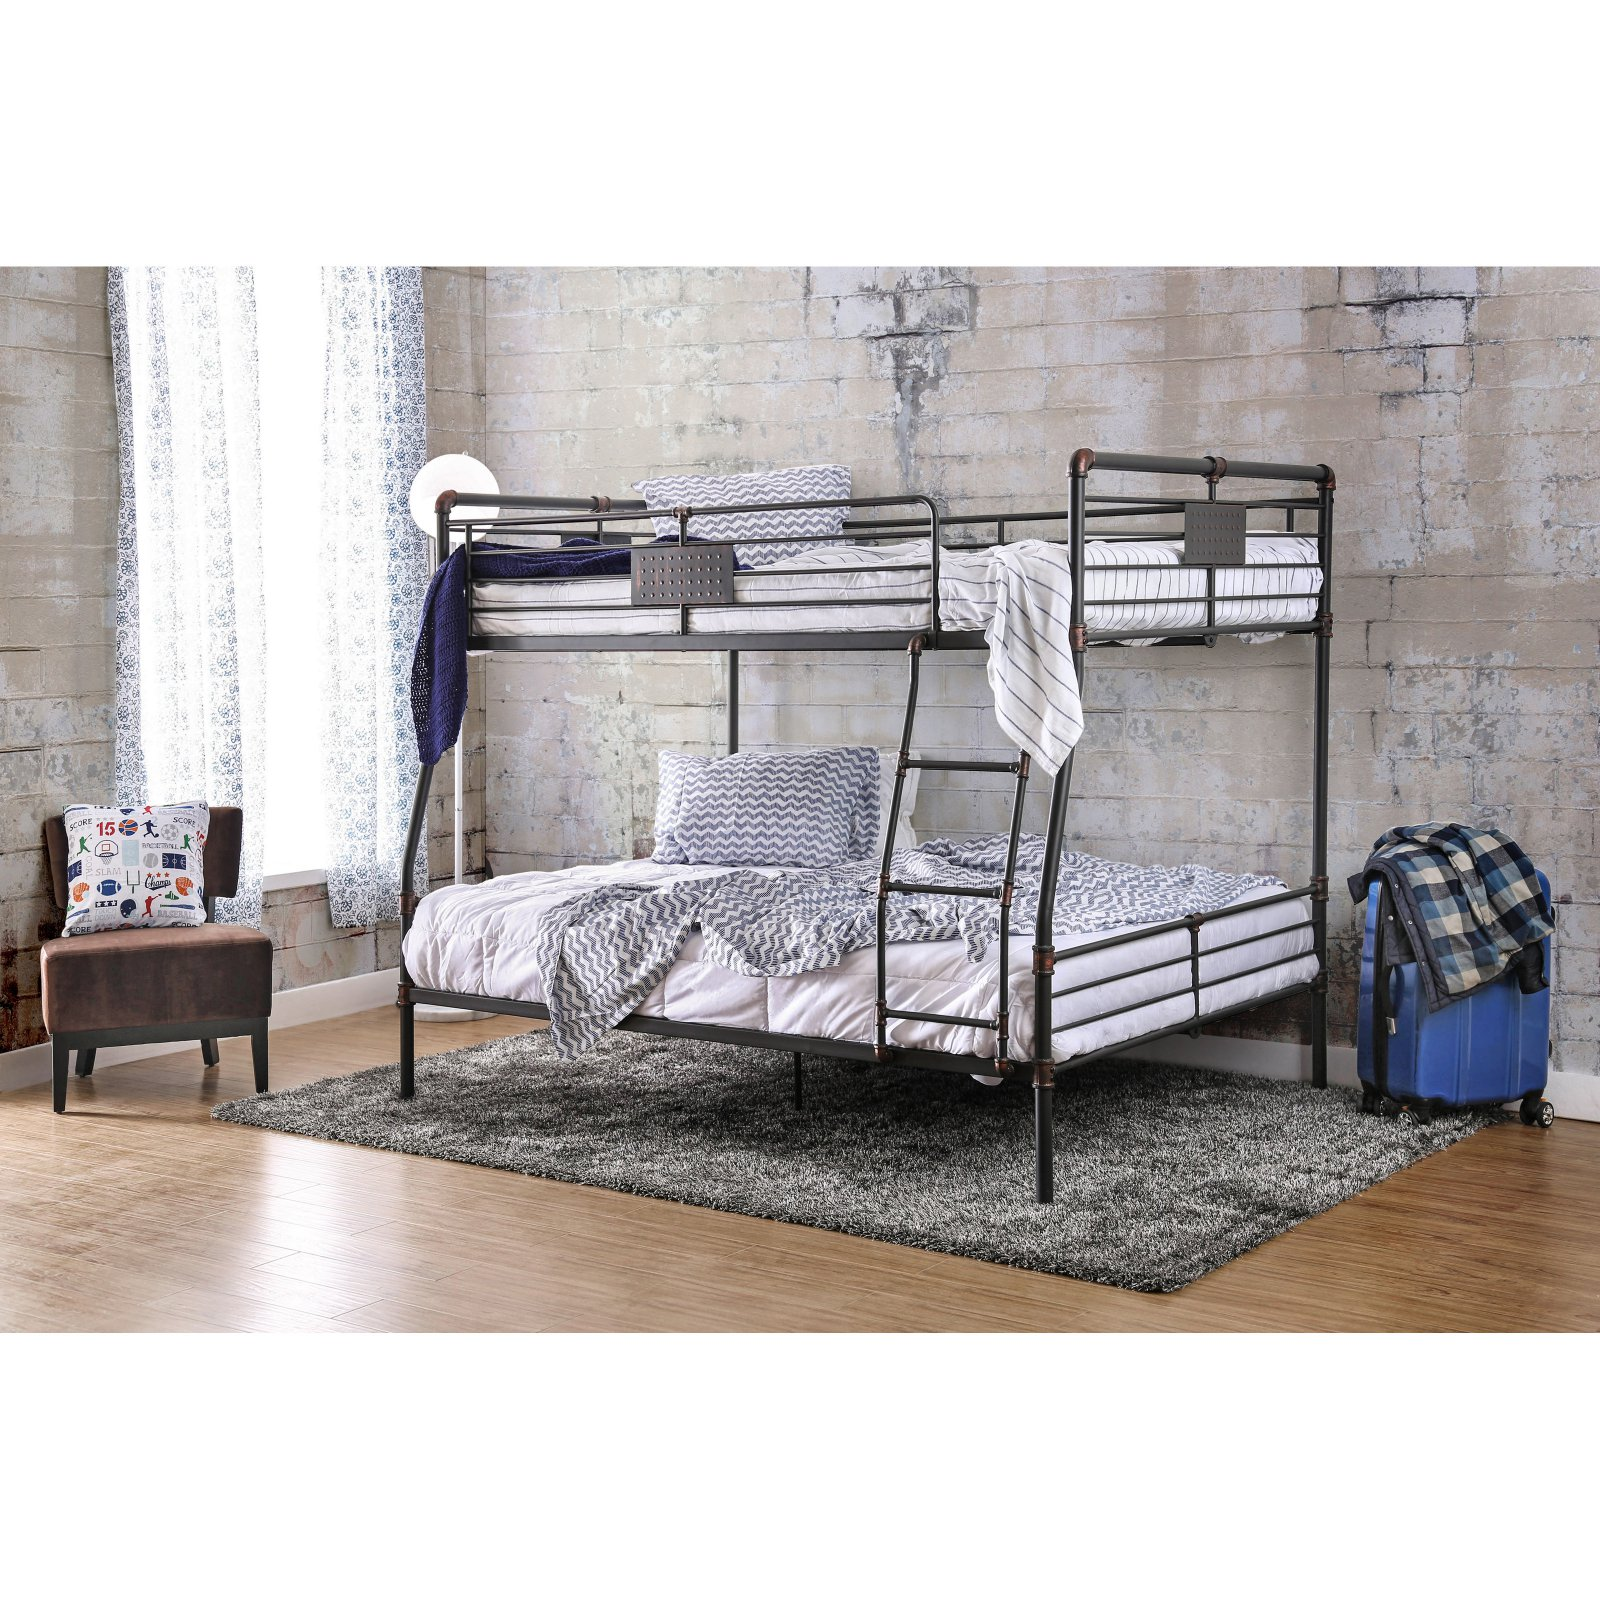 Furniture of America Rilie Full over Queen Bunk Bed